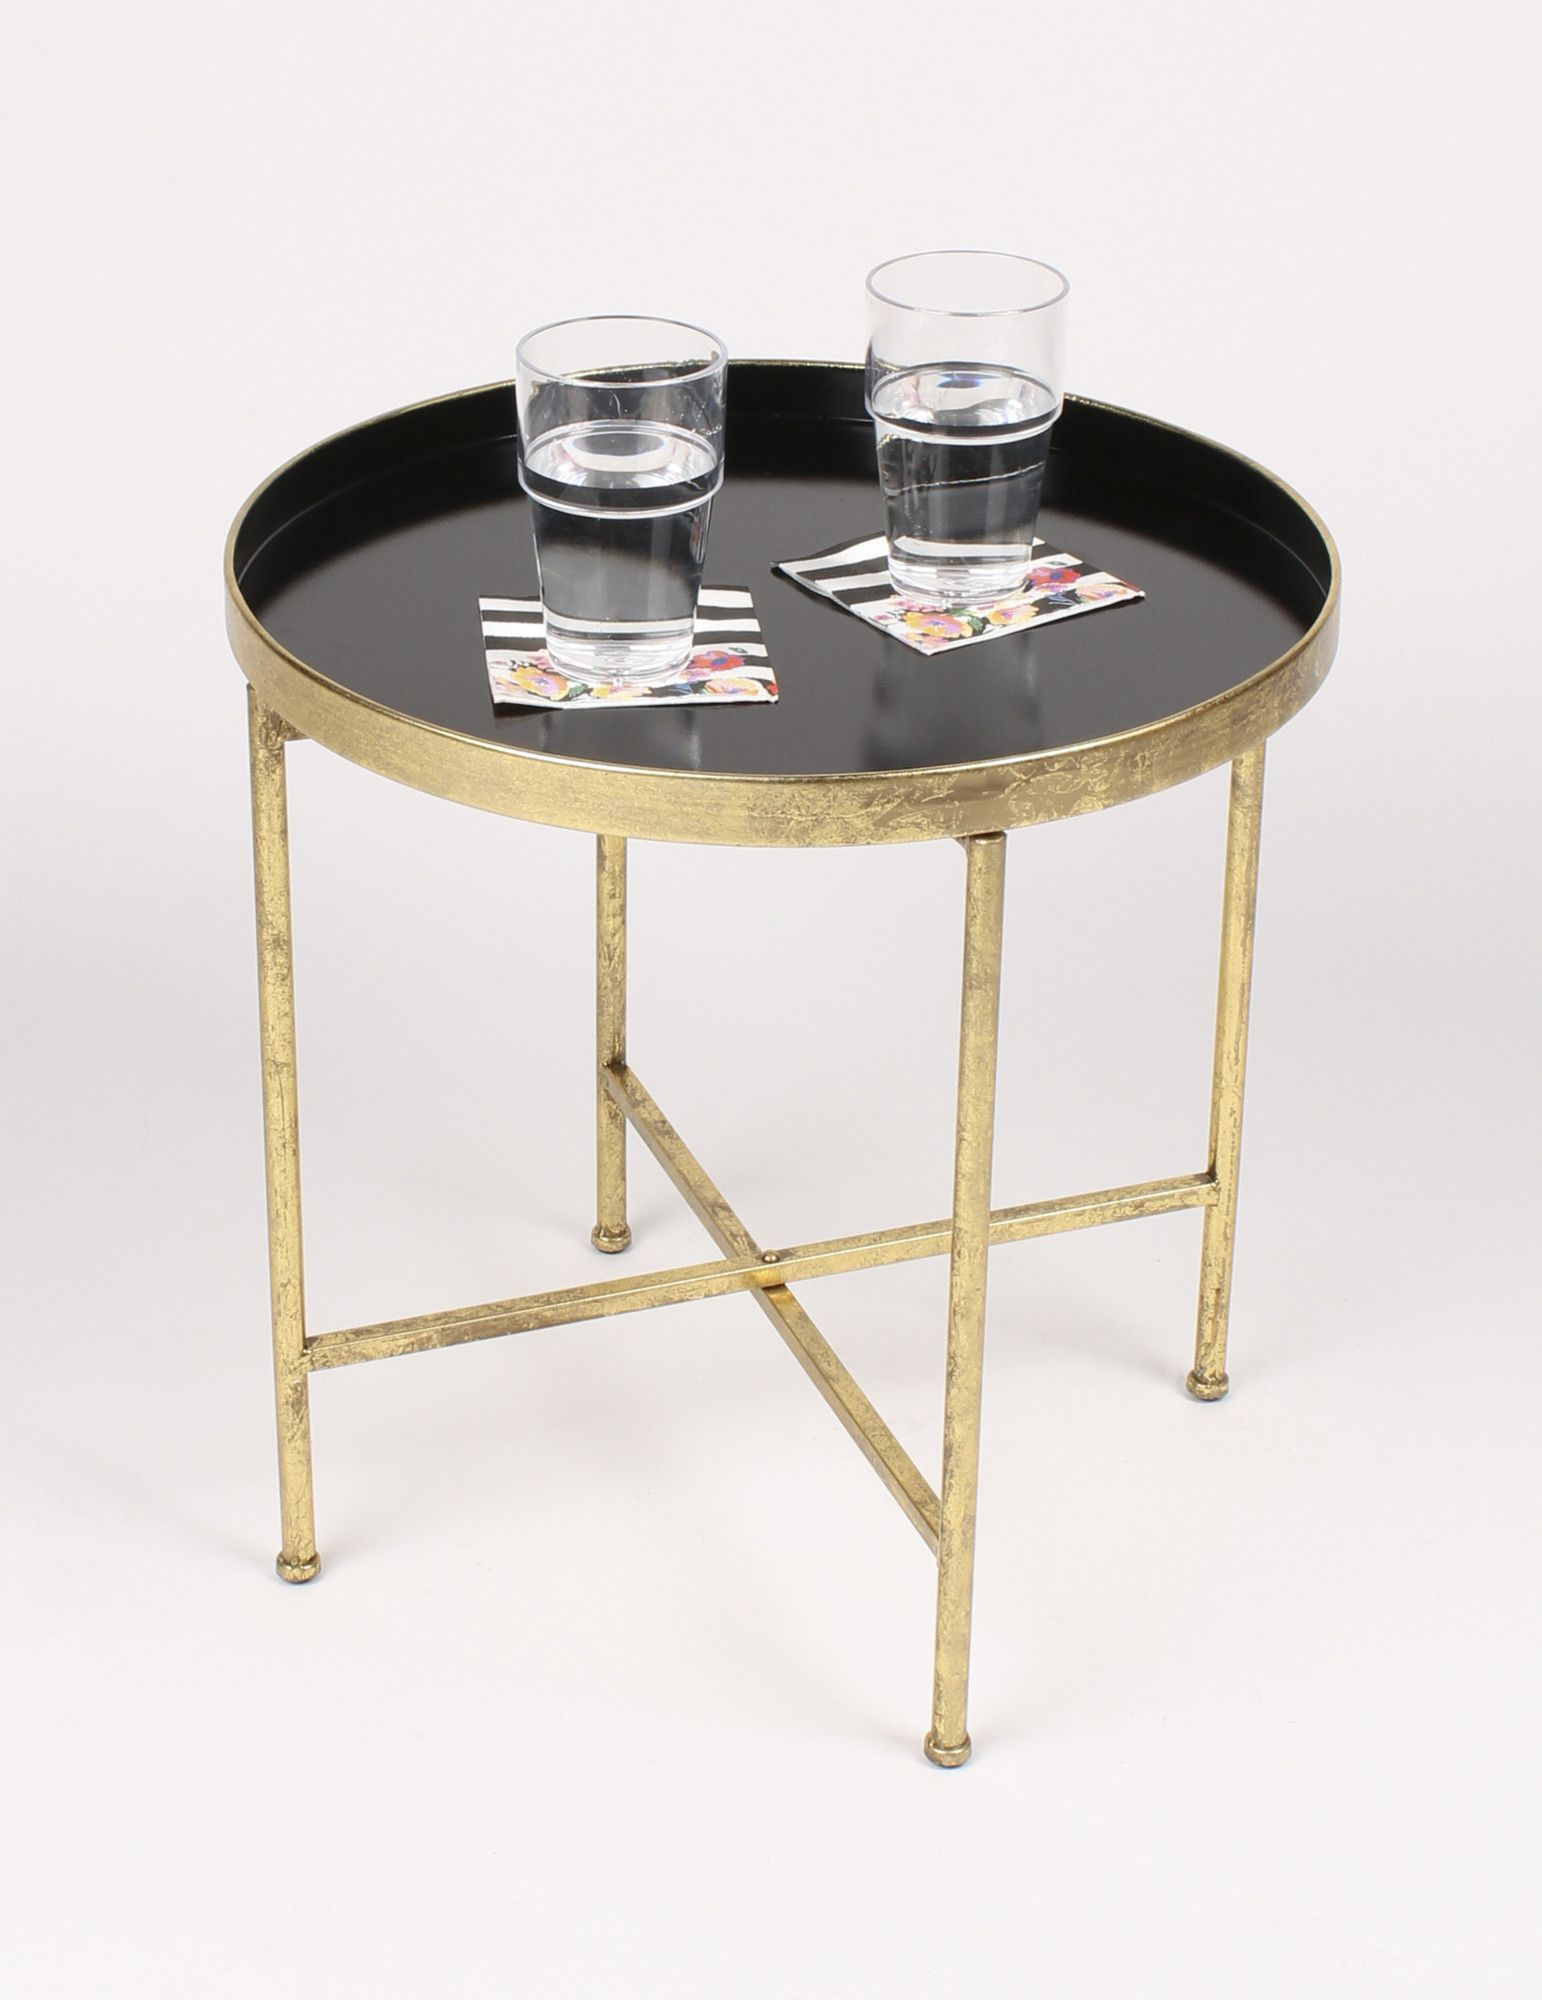 features crafted metallic leaf and painted metal for lasting accent table durability with glossy finish decorative end color tray surface narrow tables living room conversation